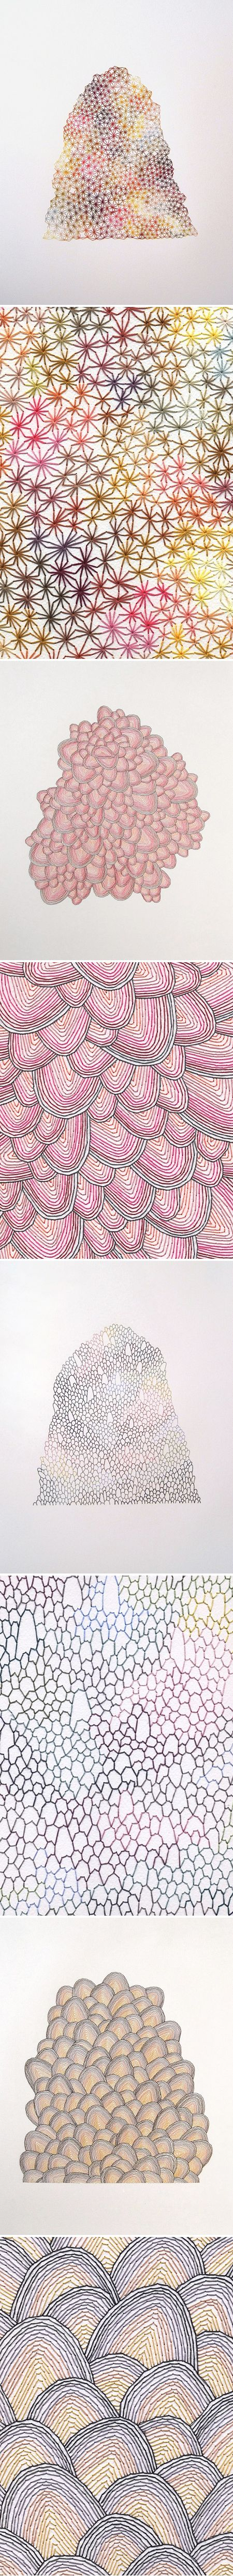 embroidery on paper by emily barletta <3